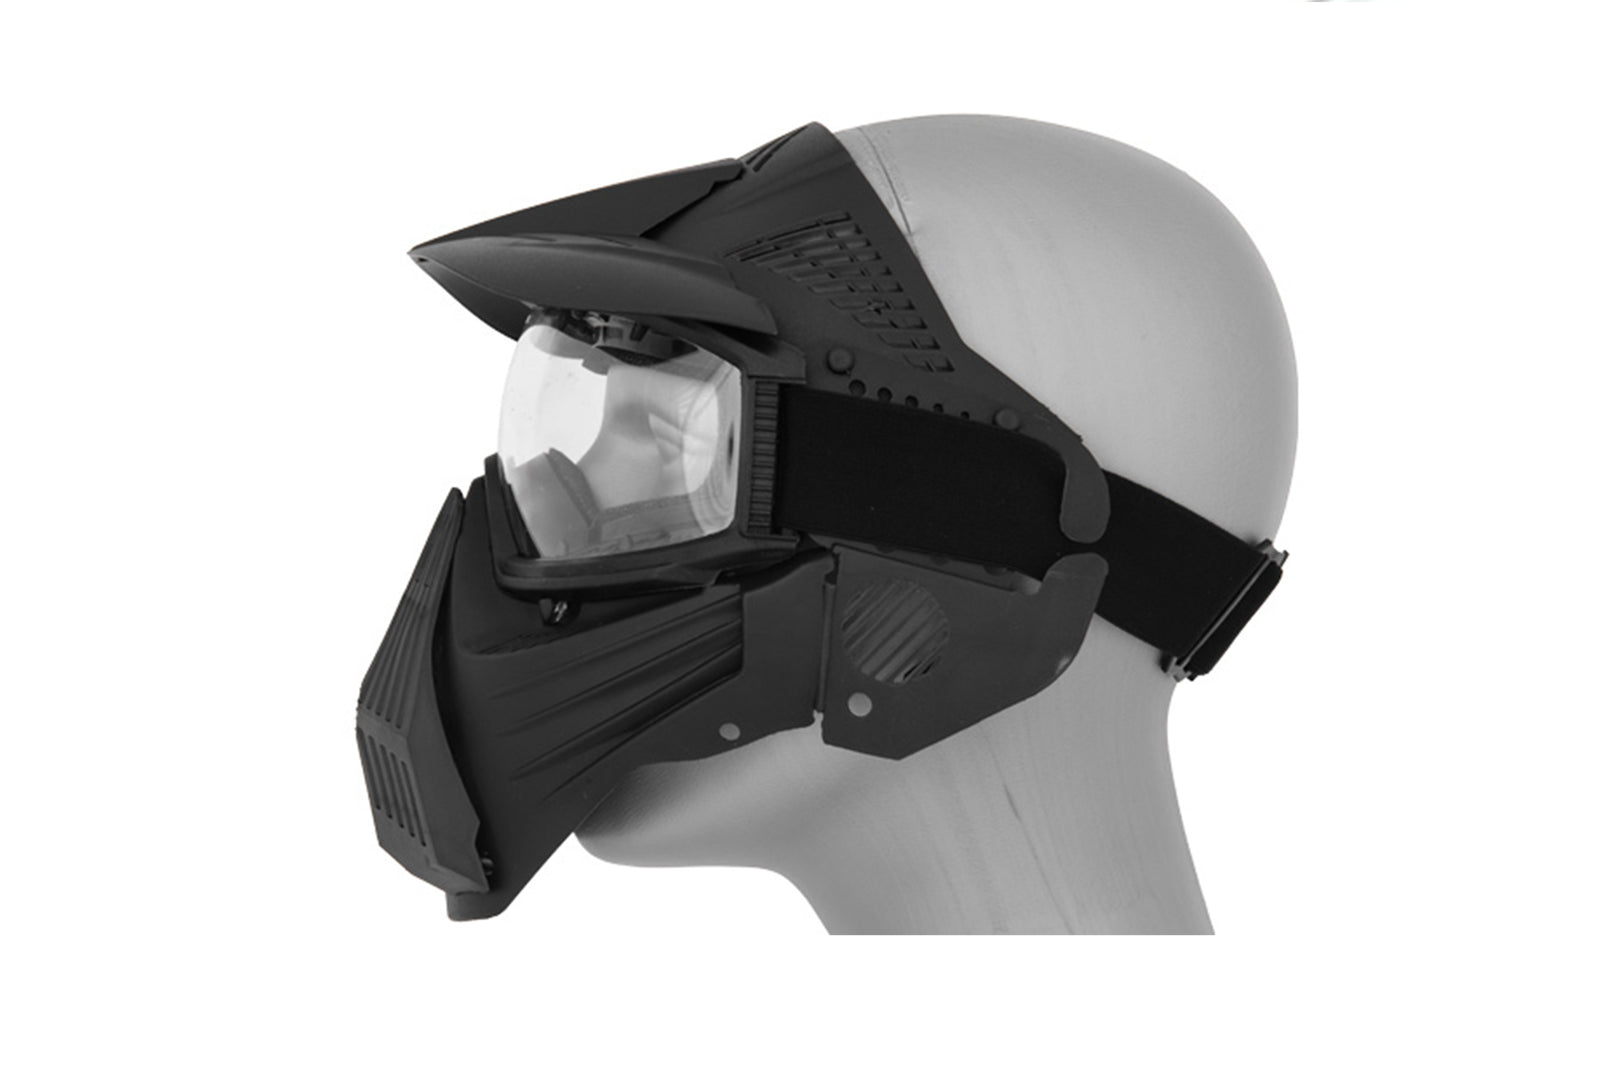 AMA TACTICAL FULL FACE AIRSOFT MASK W/ EYE SAFETY & VISOR